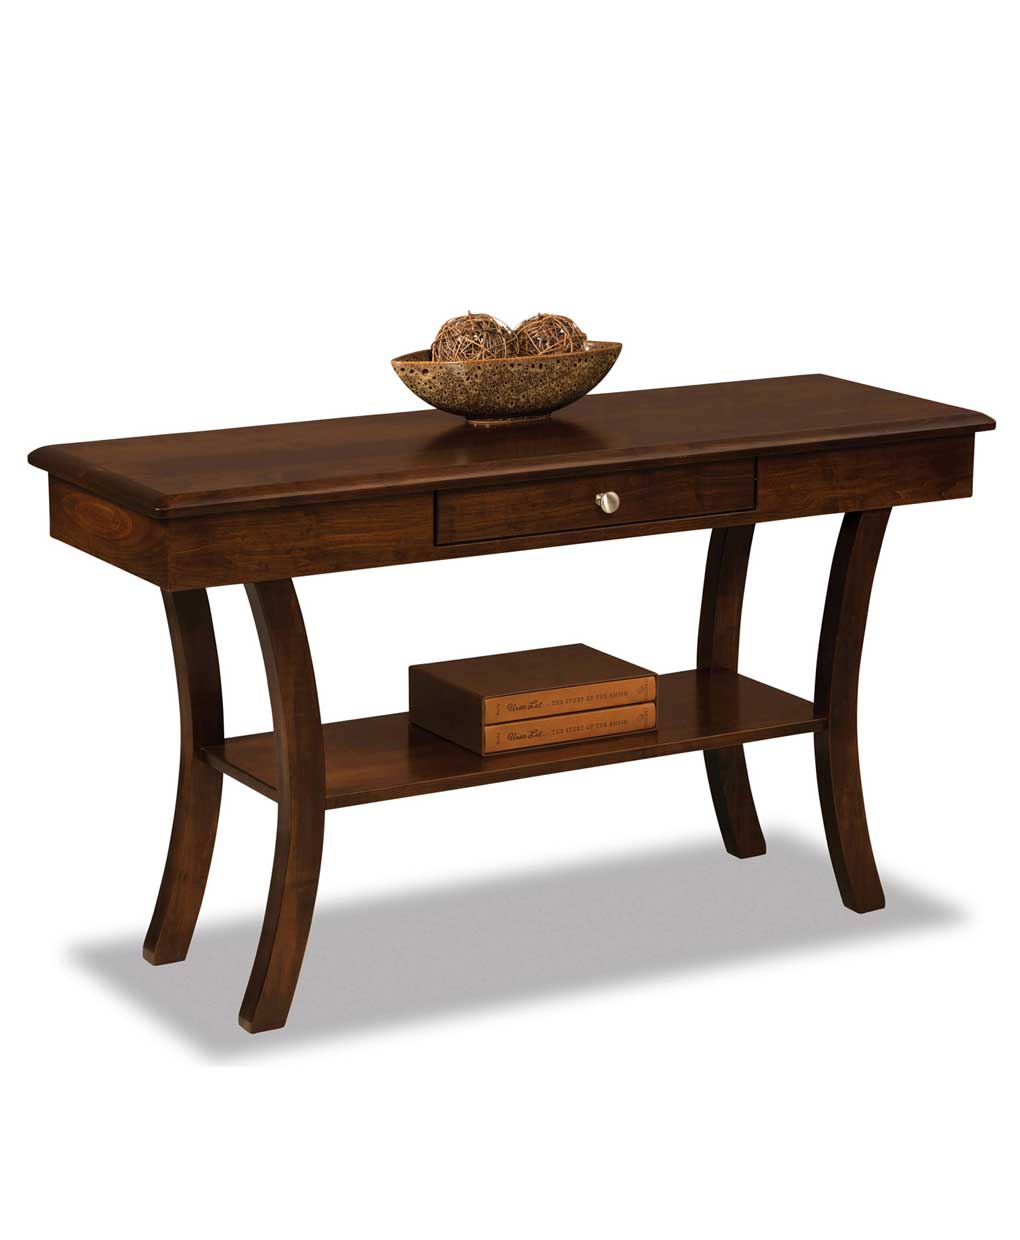 Amish Sofa Table Images Coffee Table Design Ideas : FVST SR from geotapseo.com size 1020 x 1240 jpeg 42kB